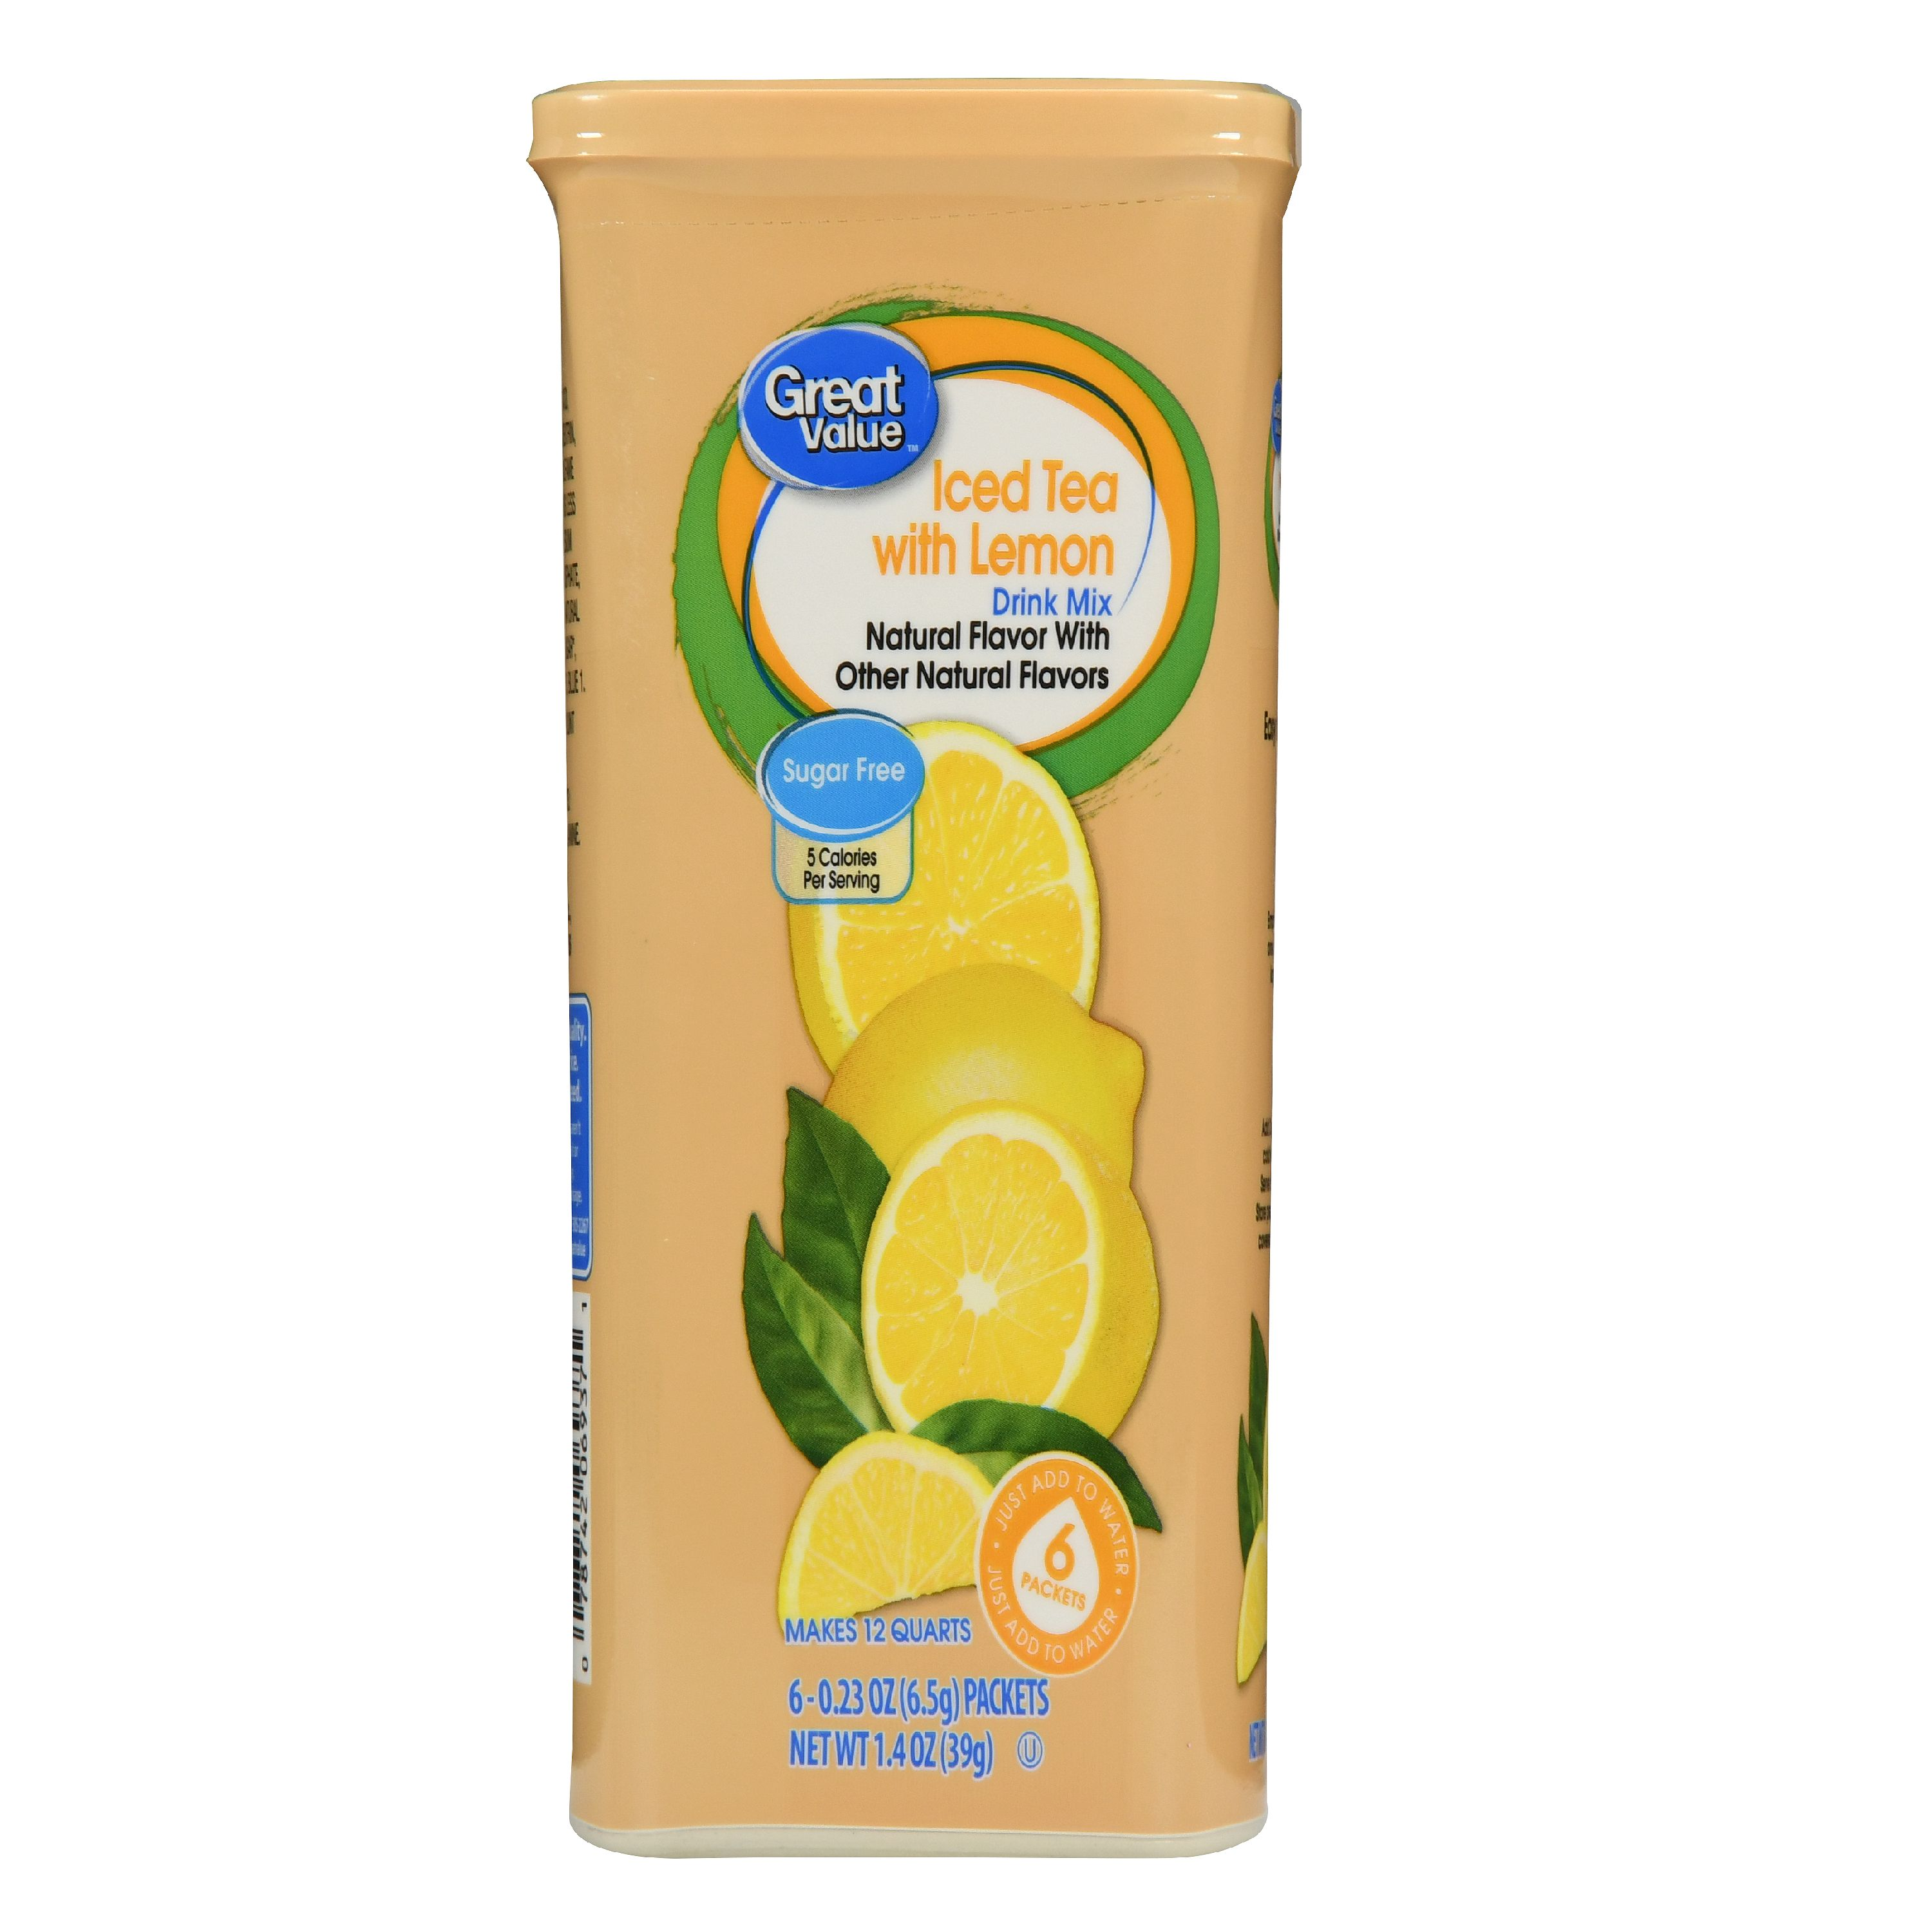 (4 Pack) Great Value Drink Mix, Iced Tea with Lemon, Sugar-Free, 1.4 oz, 6 Count